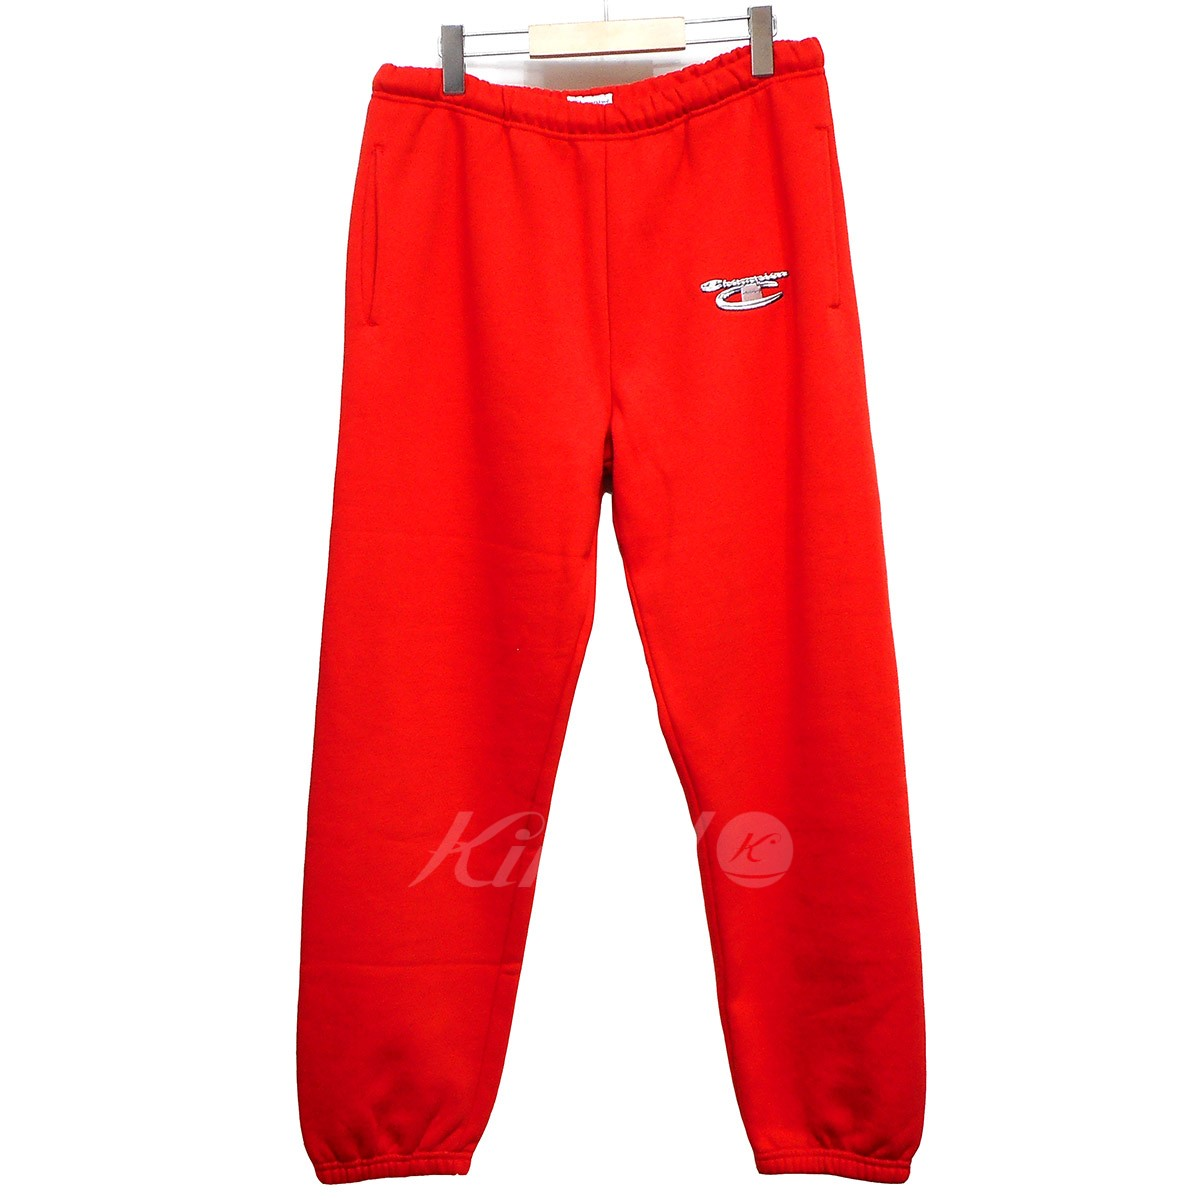 【中古】SUPREME×Champion 18AW 3D Metallic Sweatpant Brick Red 【送料無料】 【004147】 【KIND1641】